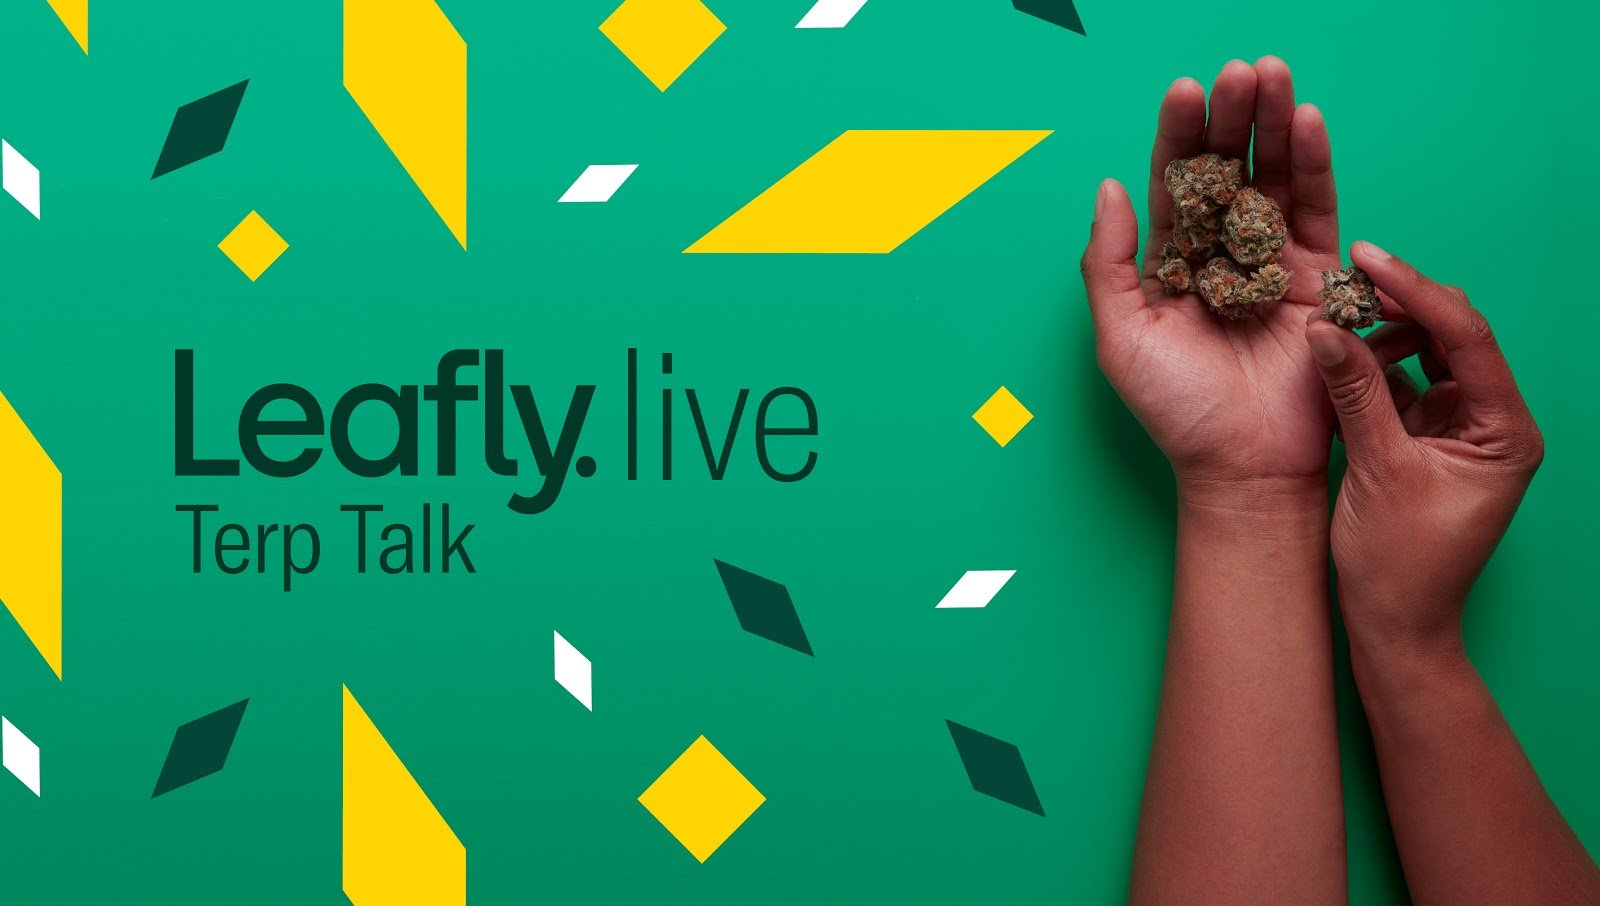 Leafly Live